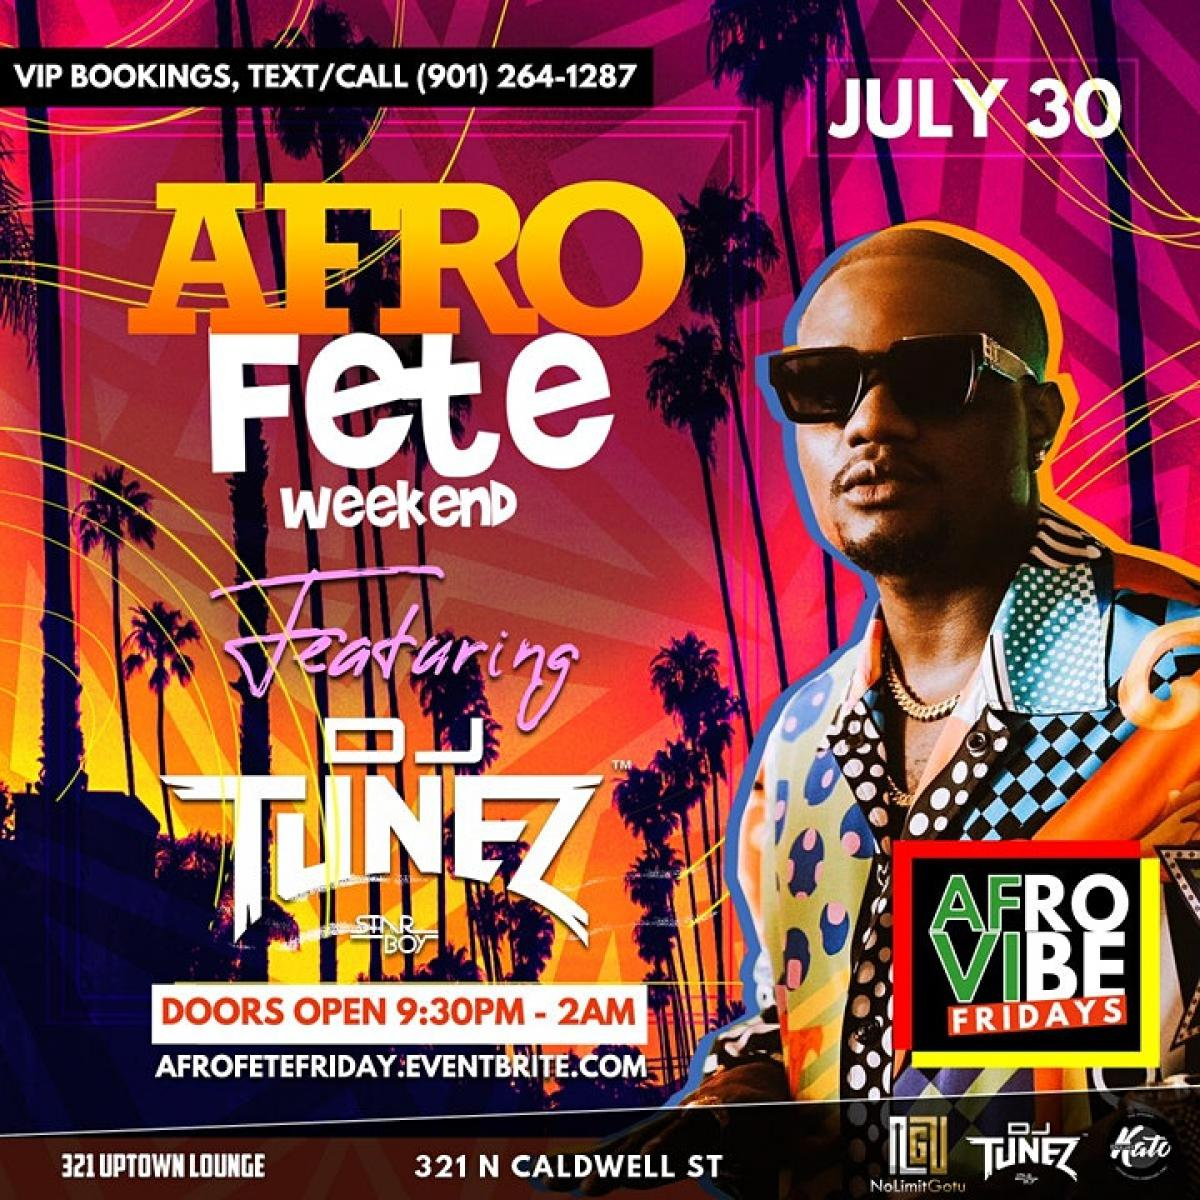 AfroVibe Fridays: Afro-Fete WKND ft. DJ Tunez! flyer or graphic.